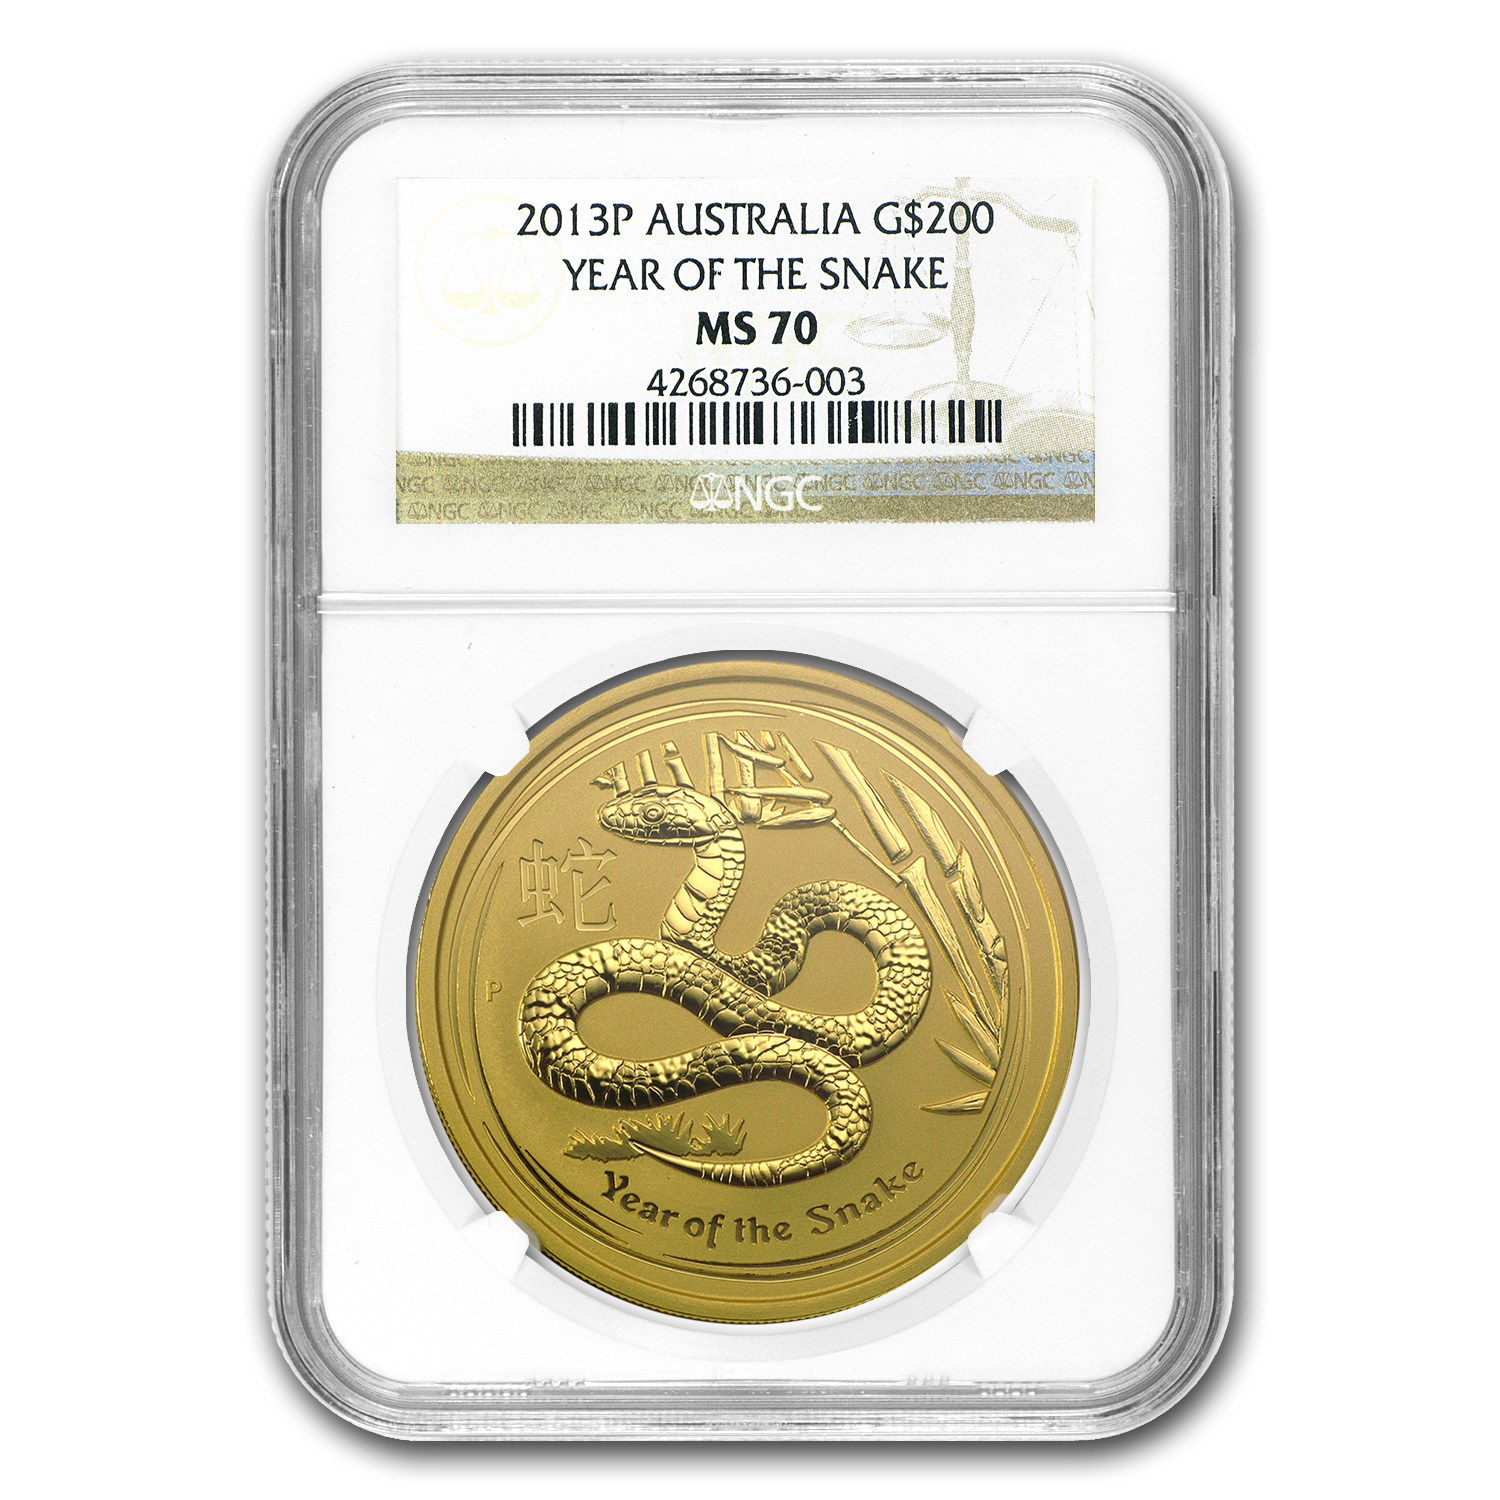 2013 2 oz Gold Lunar Year of the Snake (Series II) MS-70 (ER) NGC